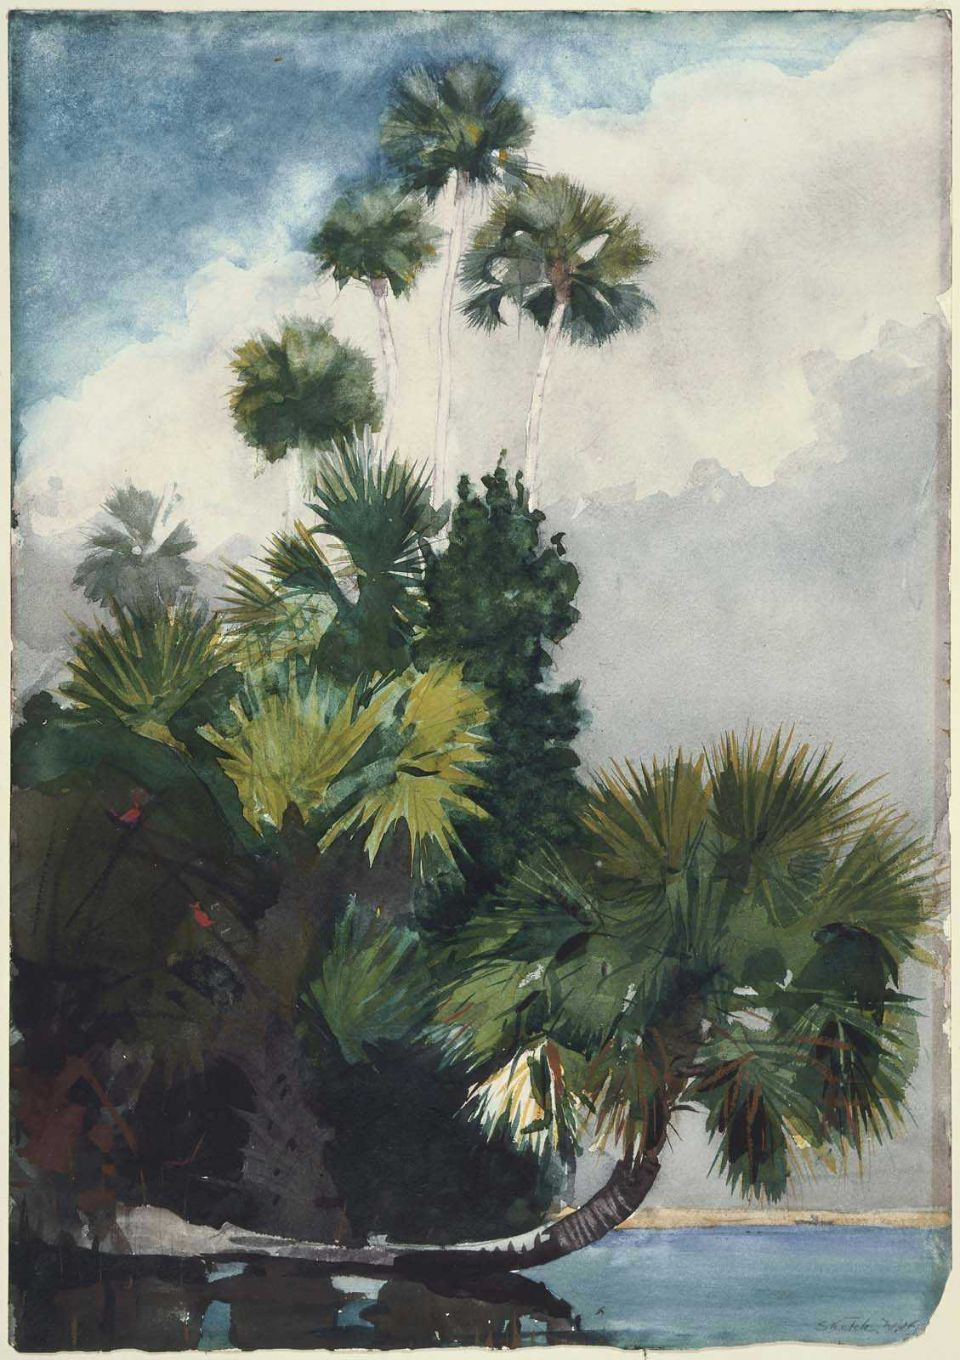 Watercolor artist magazine palm coast fl - Winslow Homer Palm Trees Florida Paintings For Sale